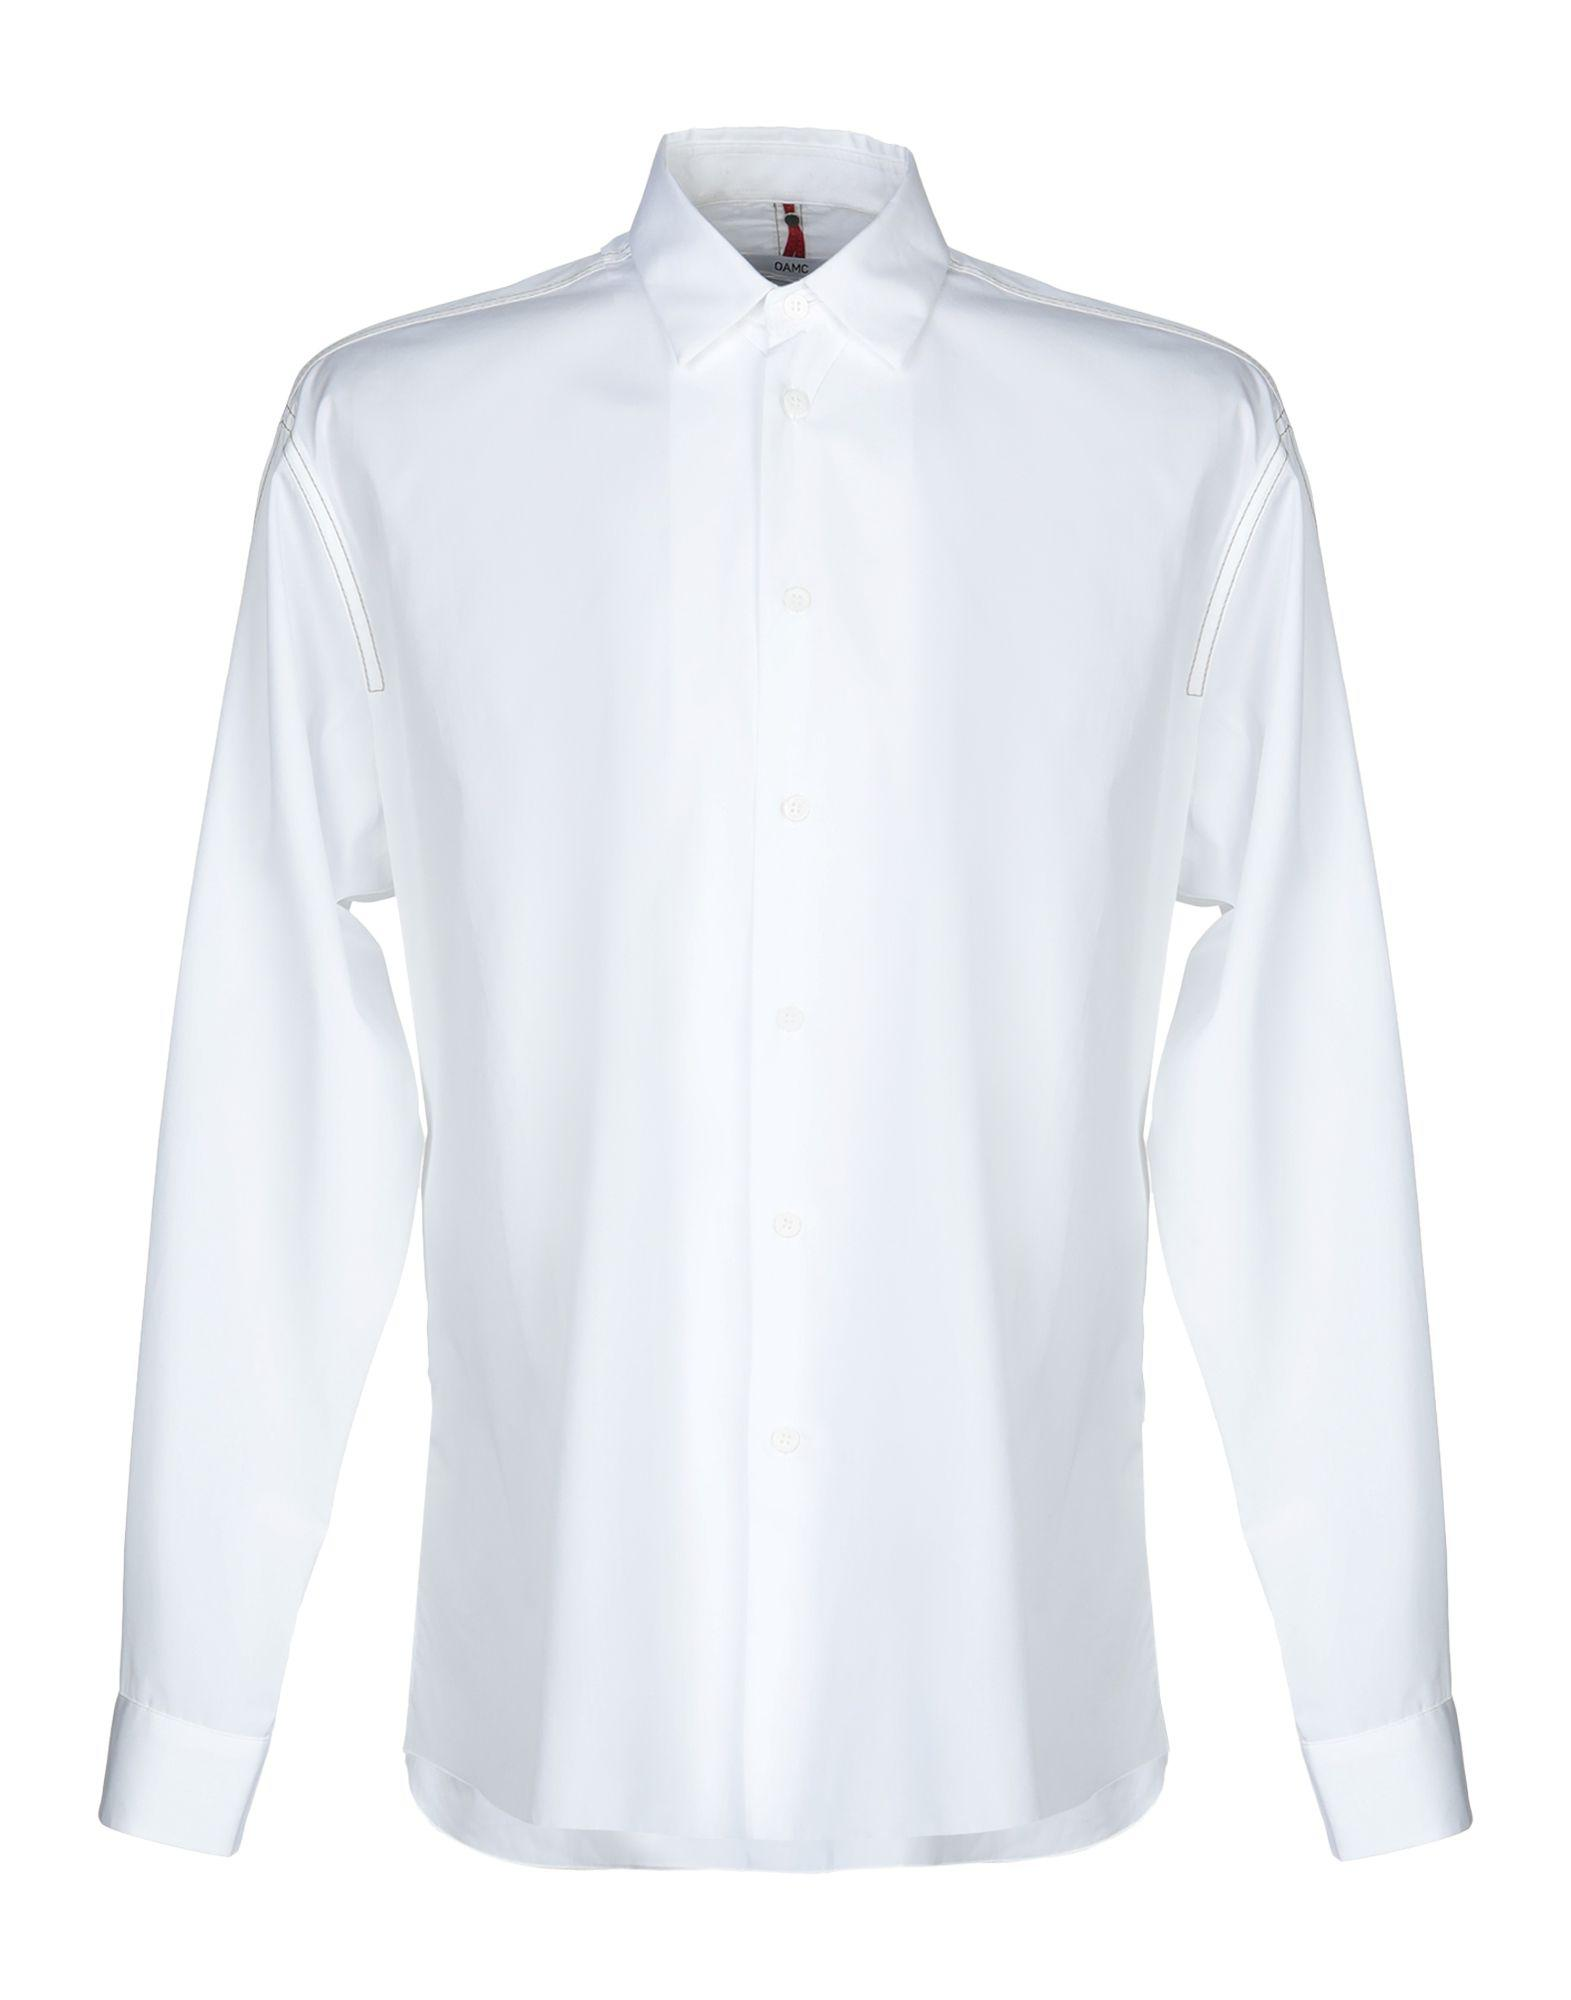 e608d6e402983 OAMC - White Shirt for Men - Lyst. View fullscreen